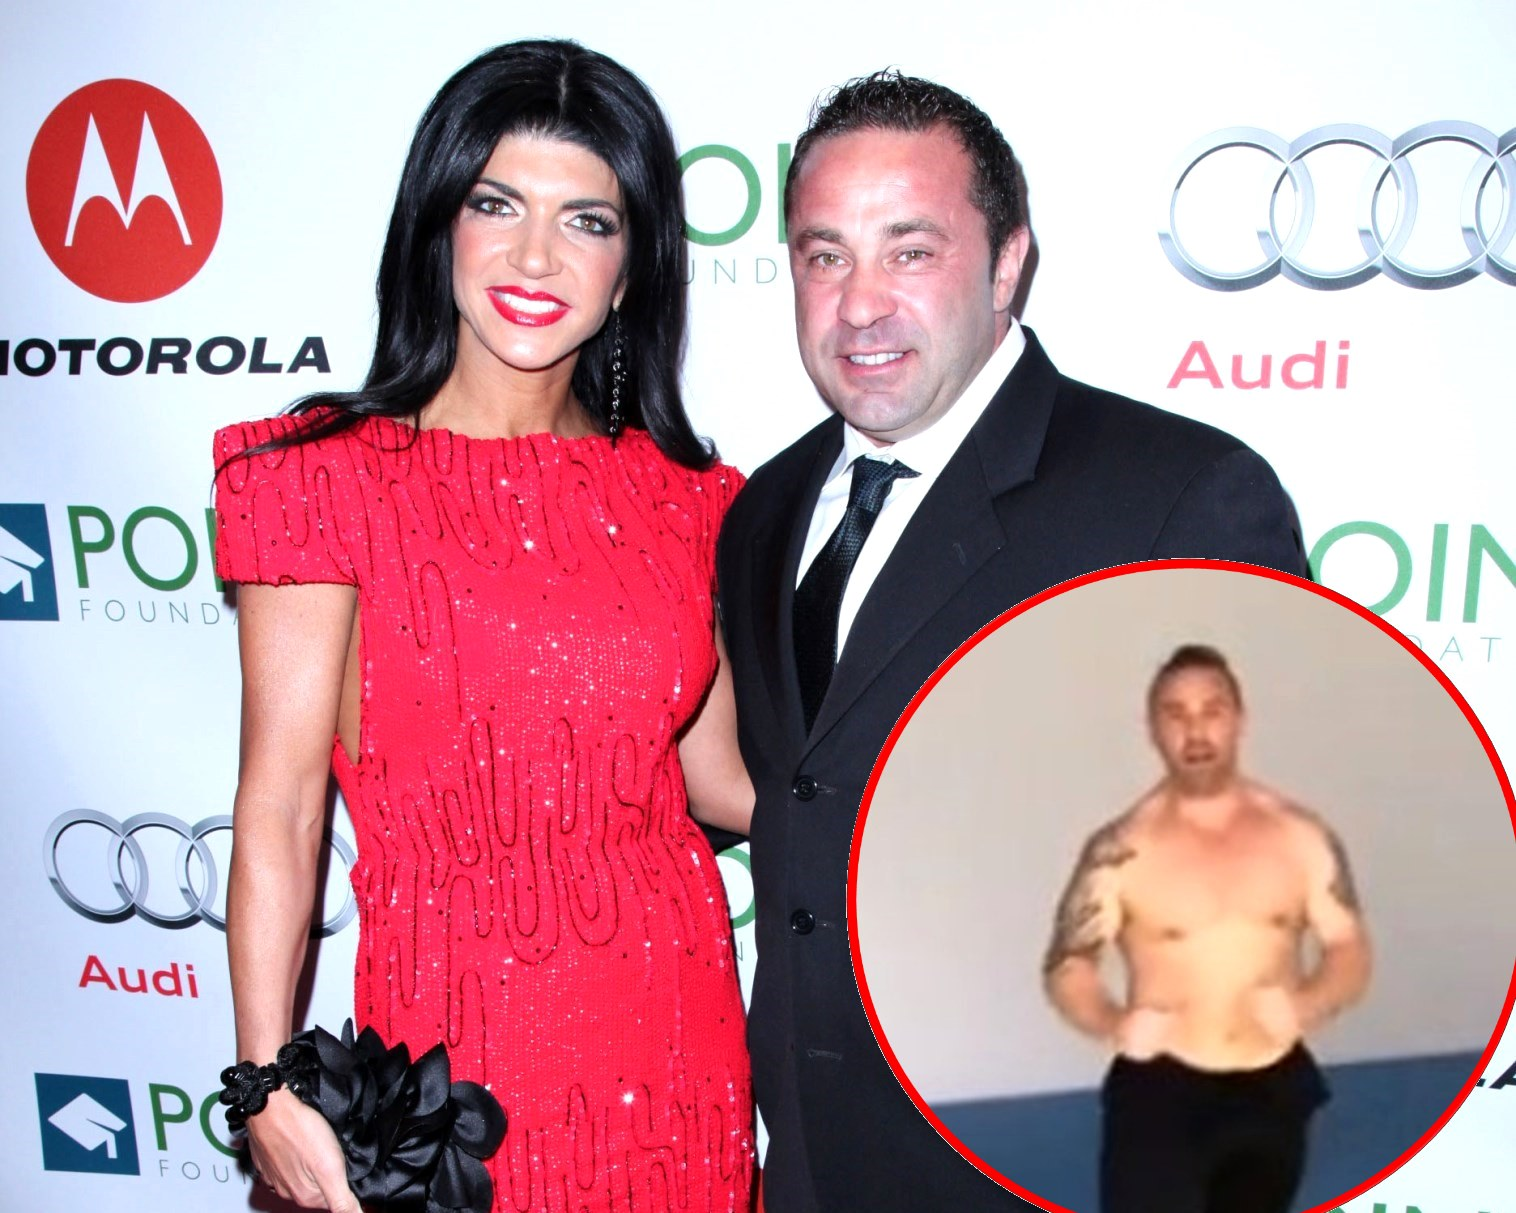 RHONJ's Teresa Giudice Denies Cheating on Joe After Revealing 'Hookup' With Man, Plus See Joe's Shirtless Fit Body as He Shows Off His MMA Moves